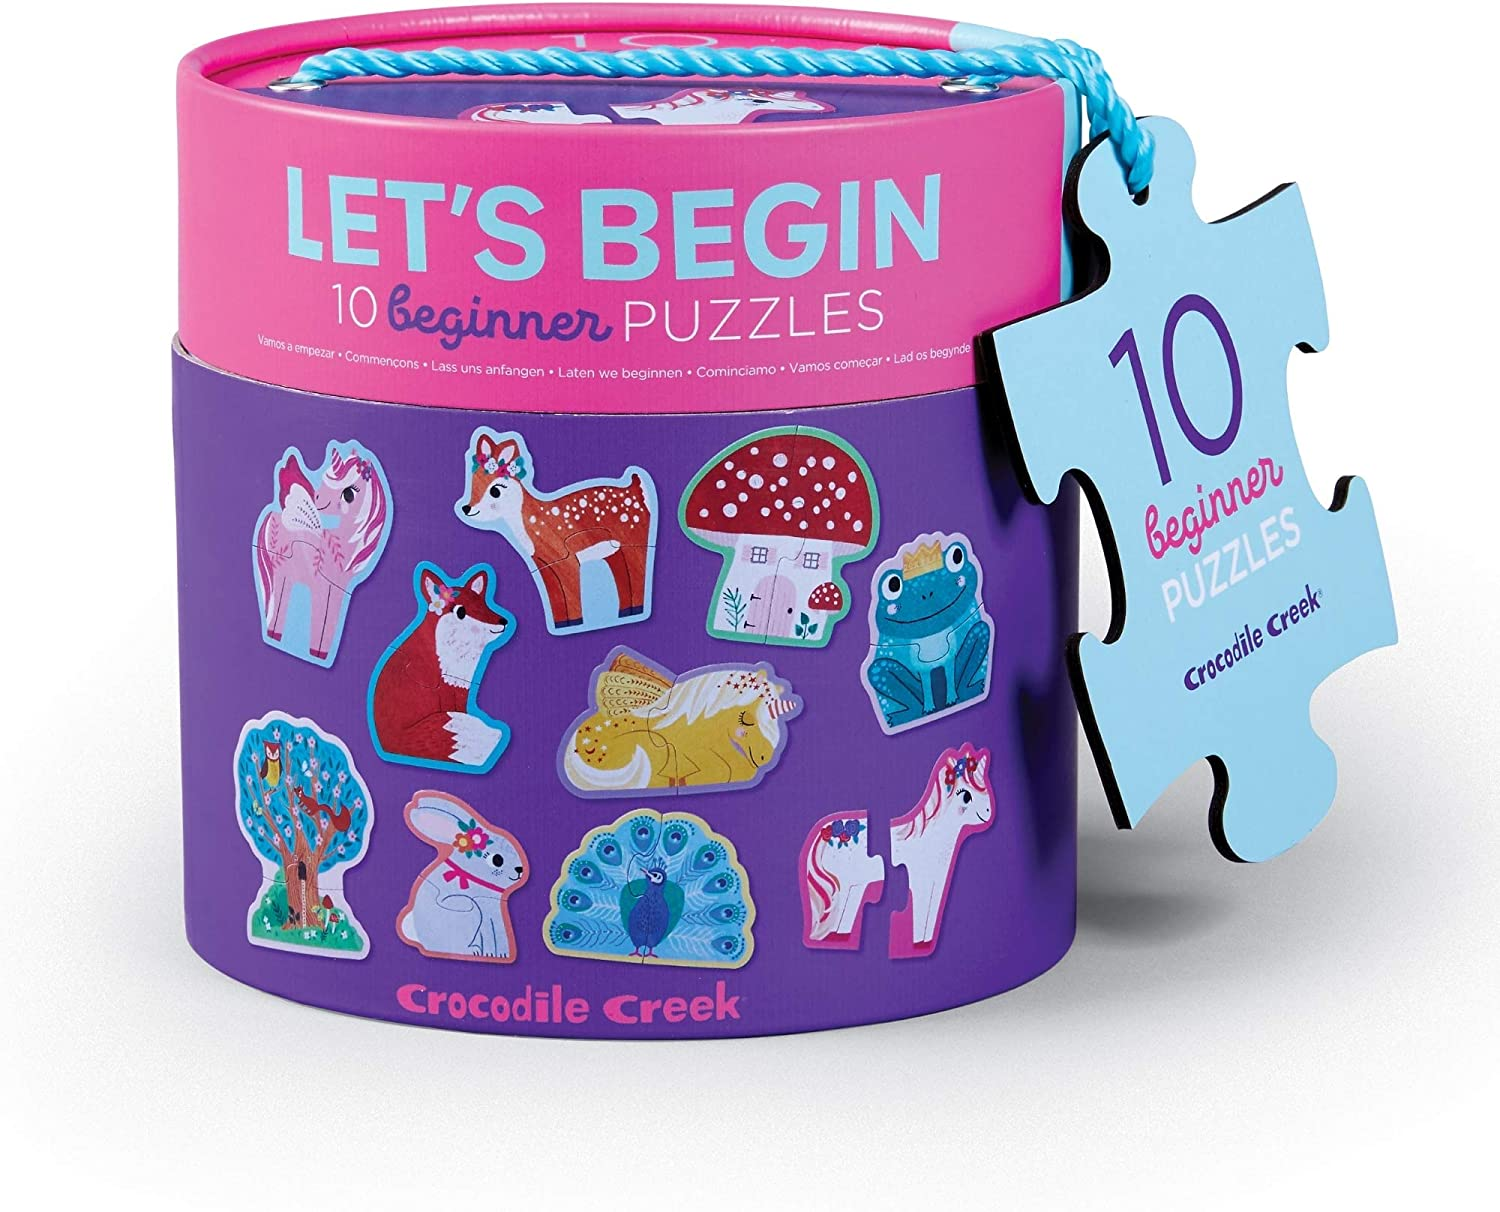 """/Let/'s Begin Unicorn/- /Ten 2-Piece Beginner Puzzles for Ages 2+ Crocodile Creek Heavy-Duty Canister for Storage Each 2-Piece Puzzle is Approximately 6/"""" x 4/"""""""